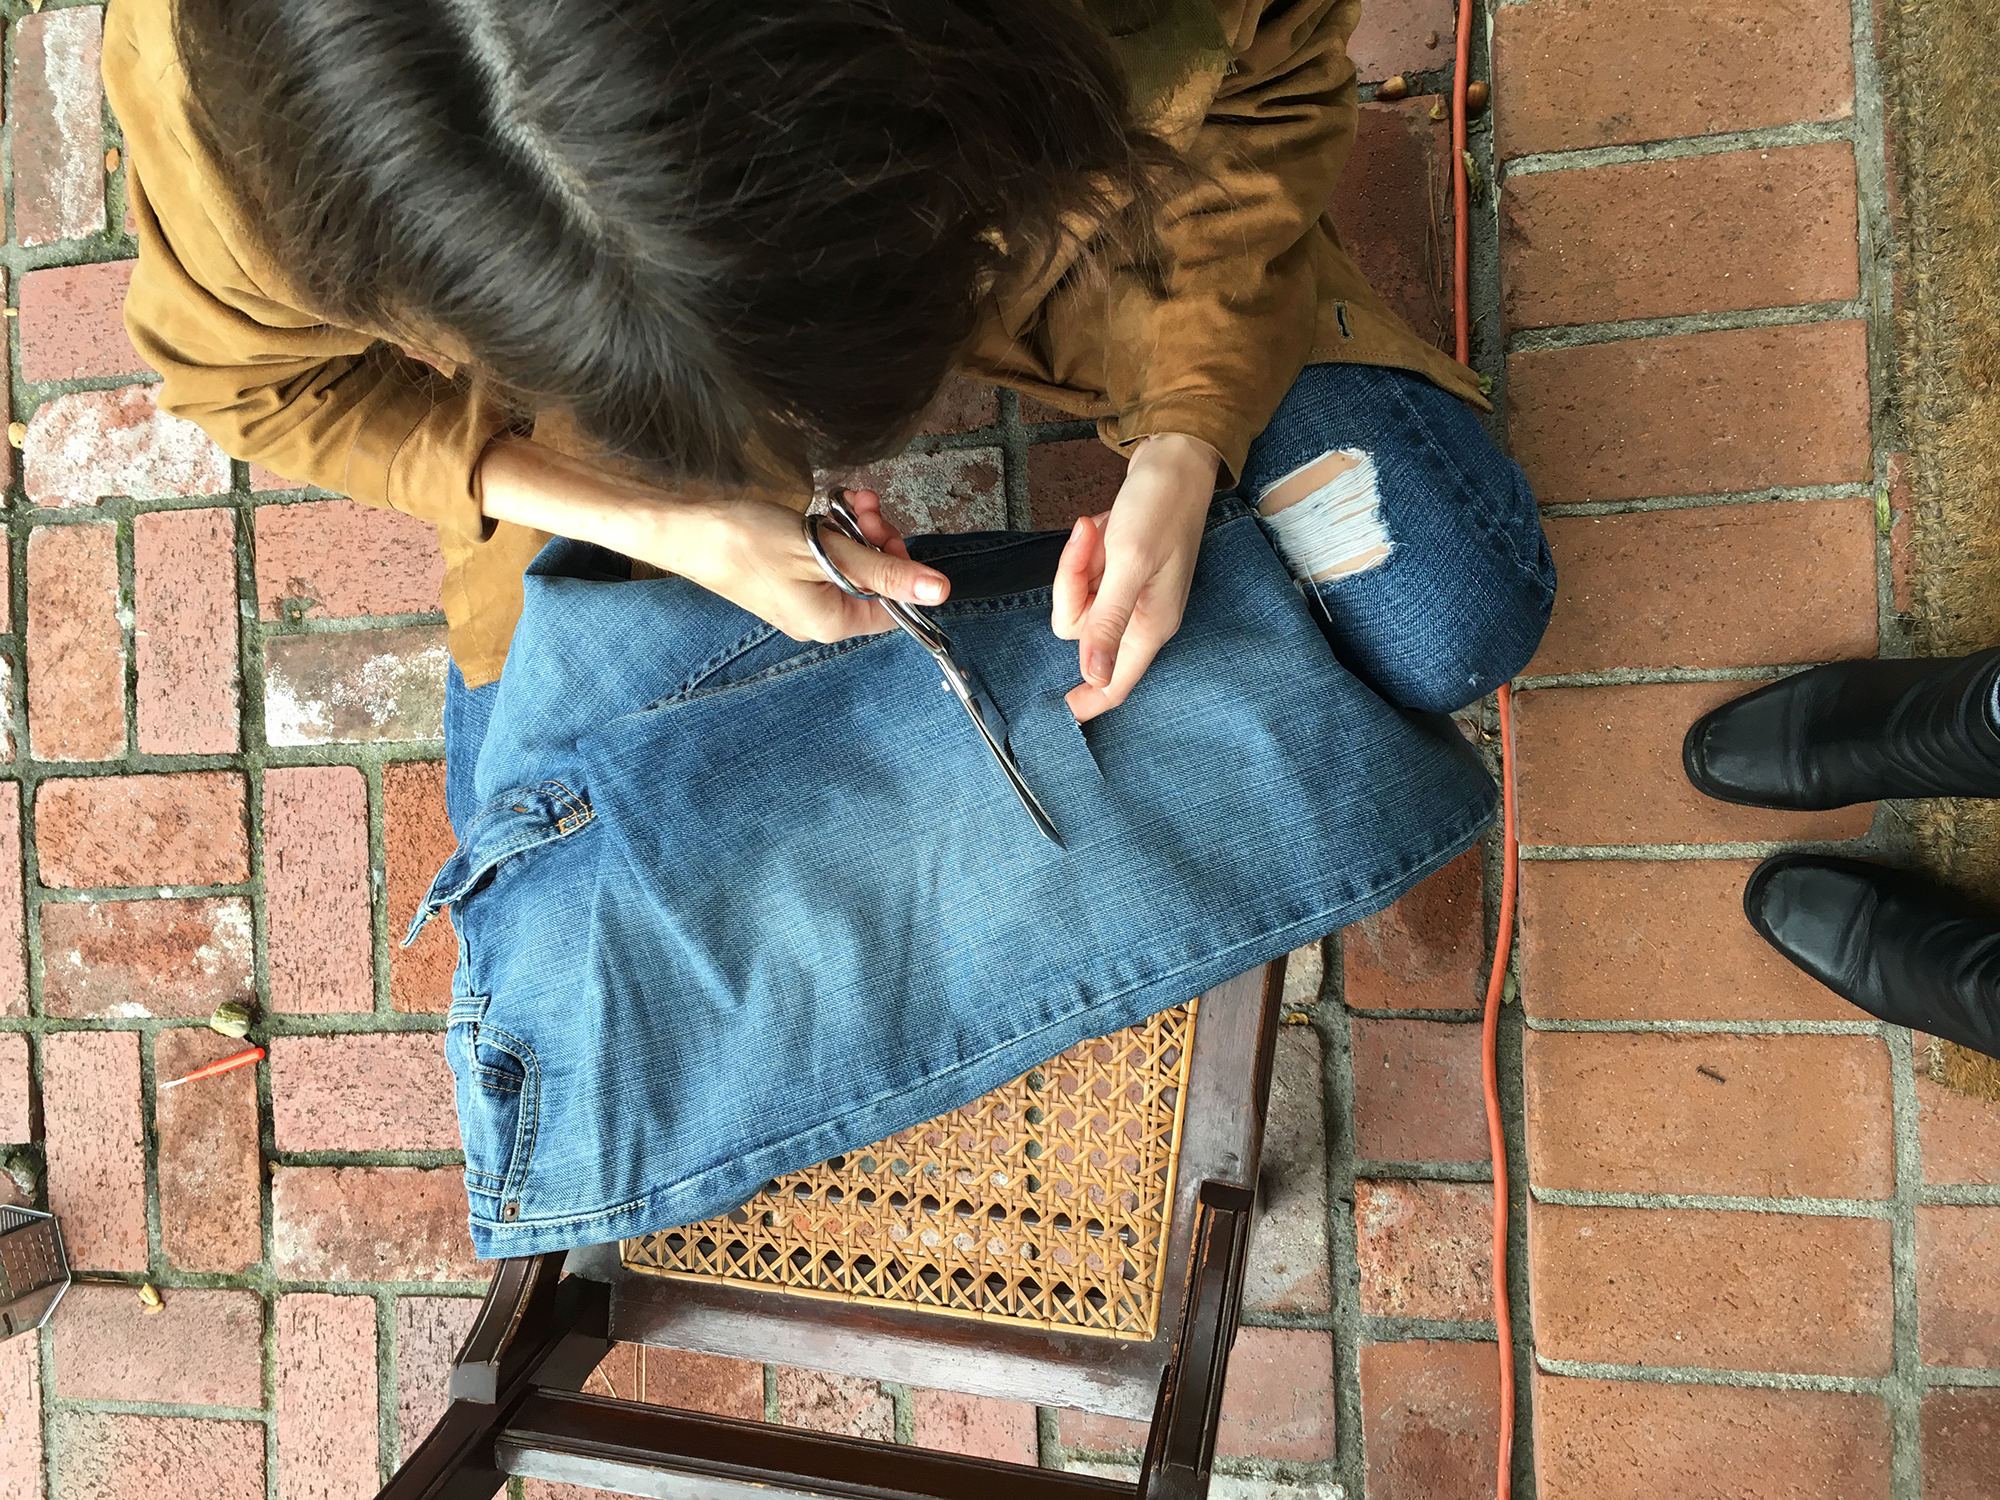 Pieceology-Vintage-How-To-DIY-Denim-Jeans-Ripping-Blog-4.jpg